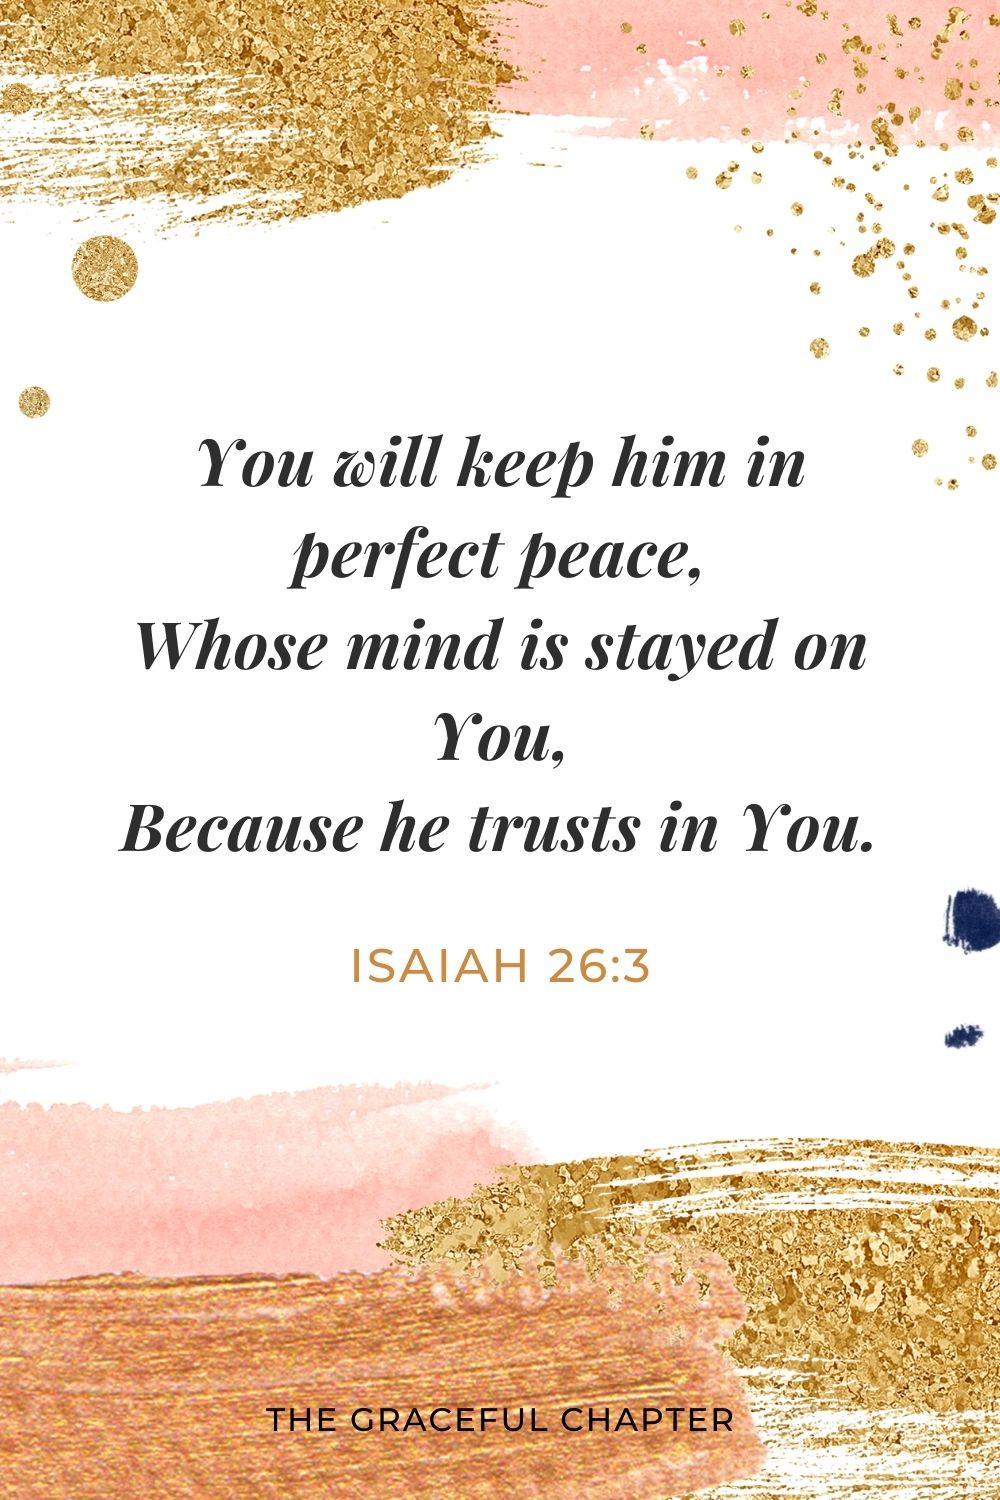 You will keep him in perfect peace, Whose mind is stayed on You, Because he trusts in You. Isaiah 26:3